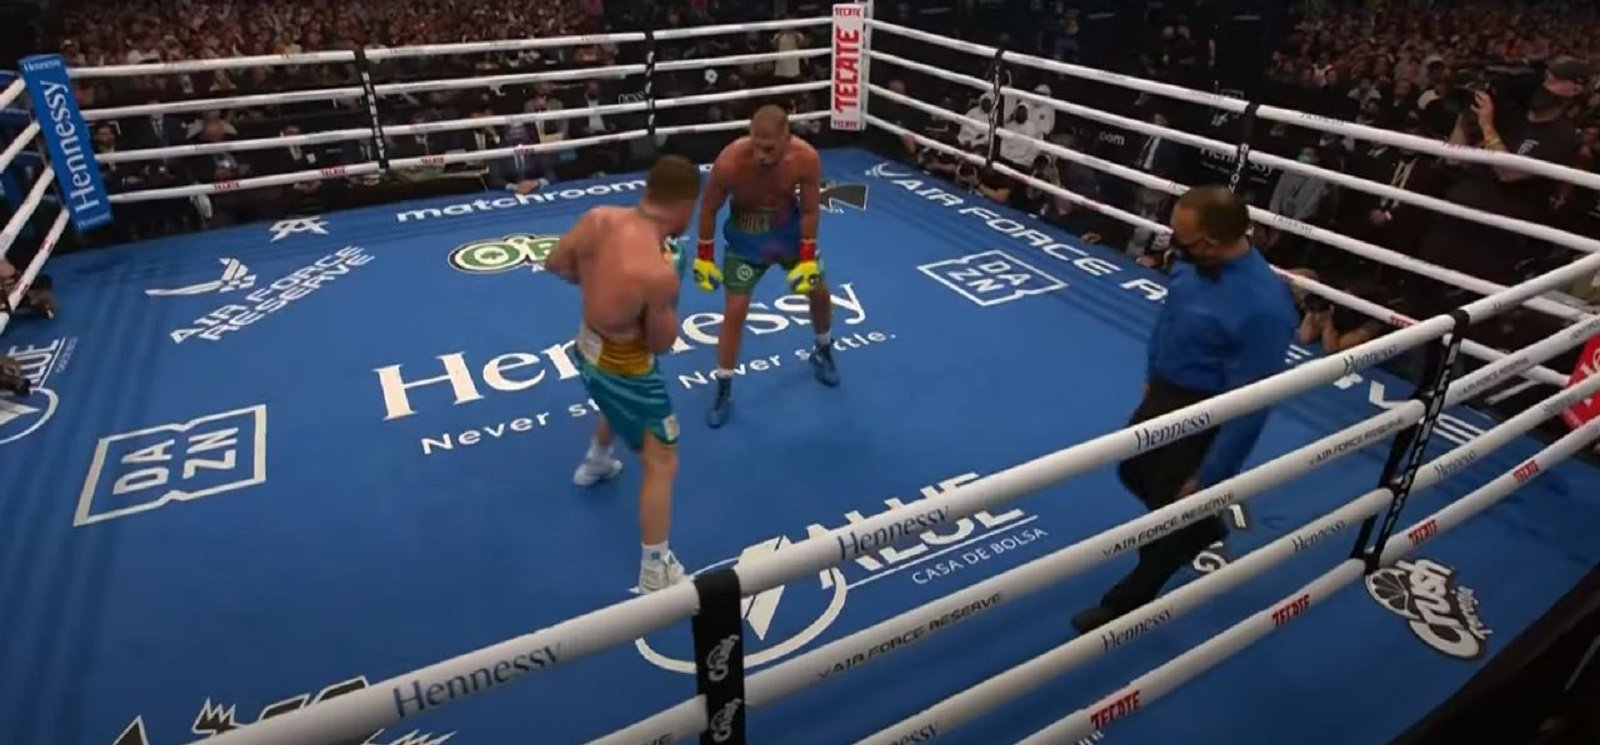 Likely Canelo Next Opponent Reacts To Him Beating Saunders